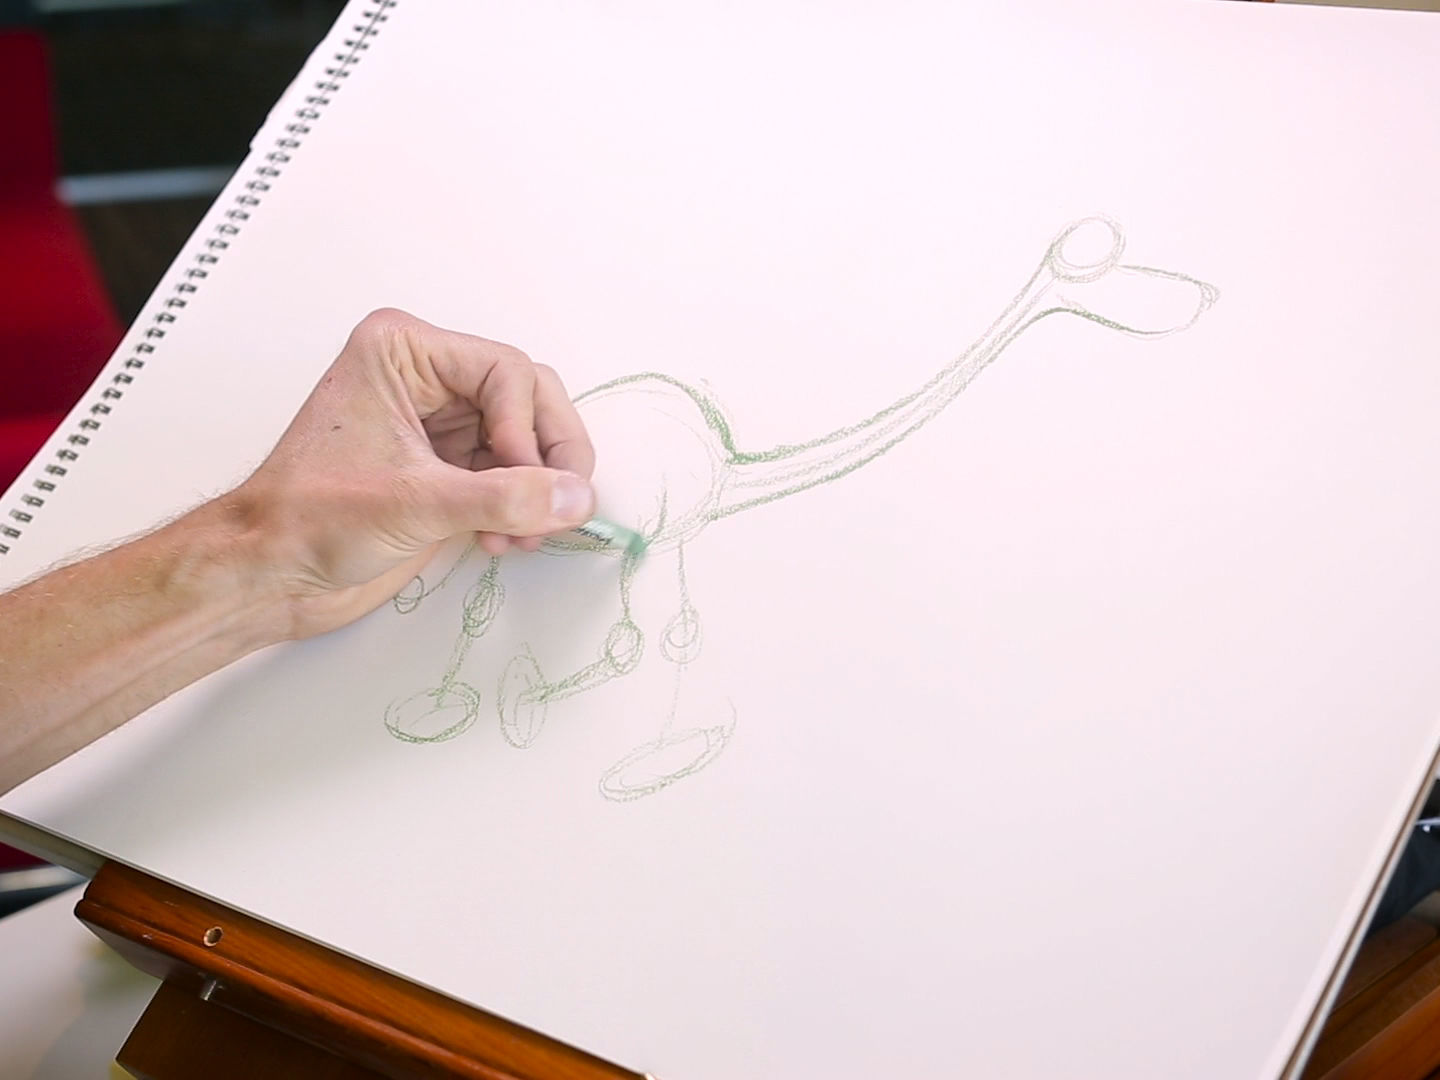 How to Draw Arlo from Good Dinosaur | Disney Insider